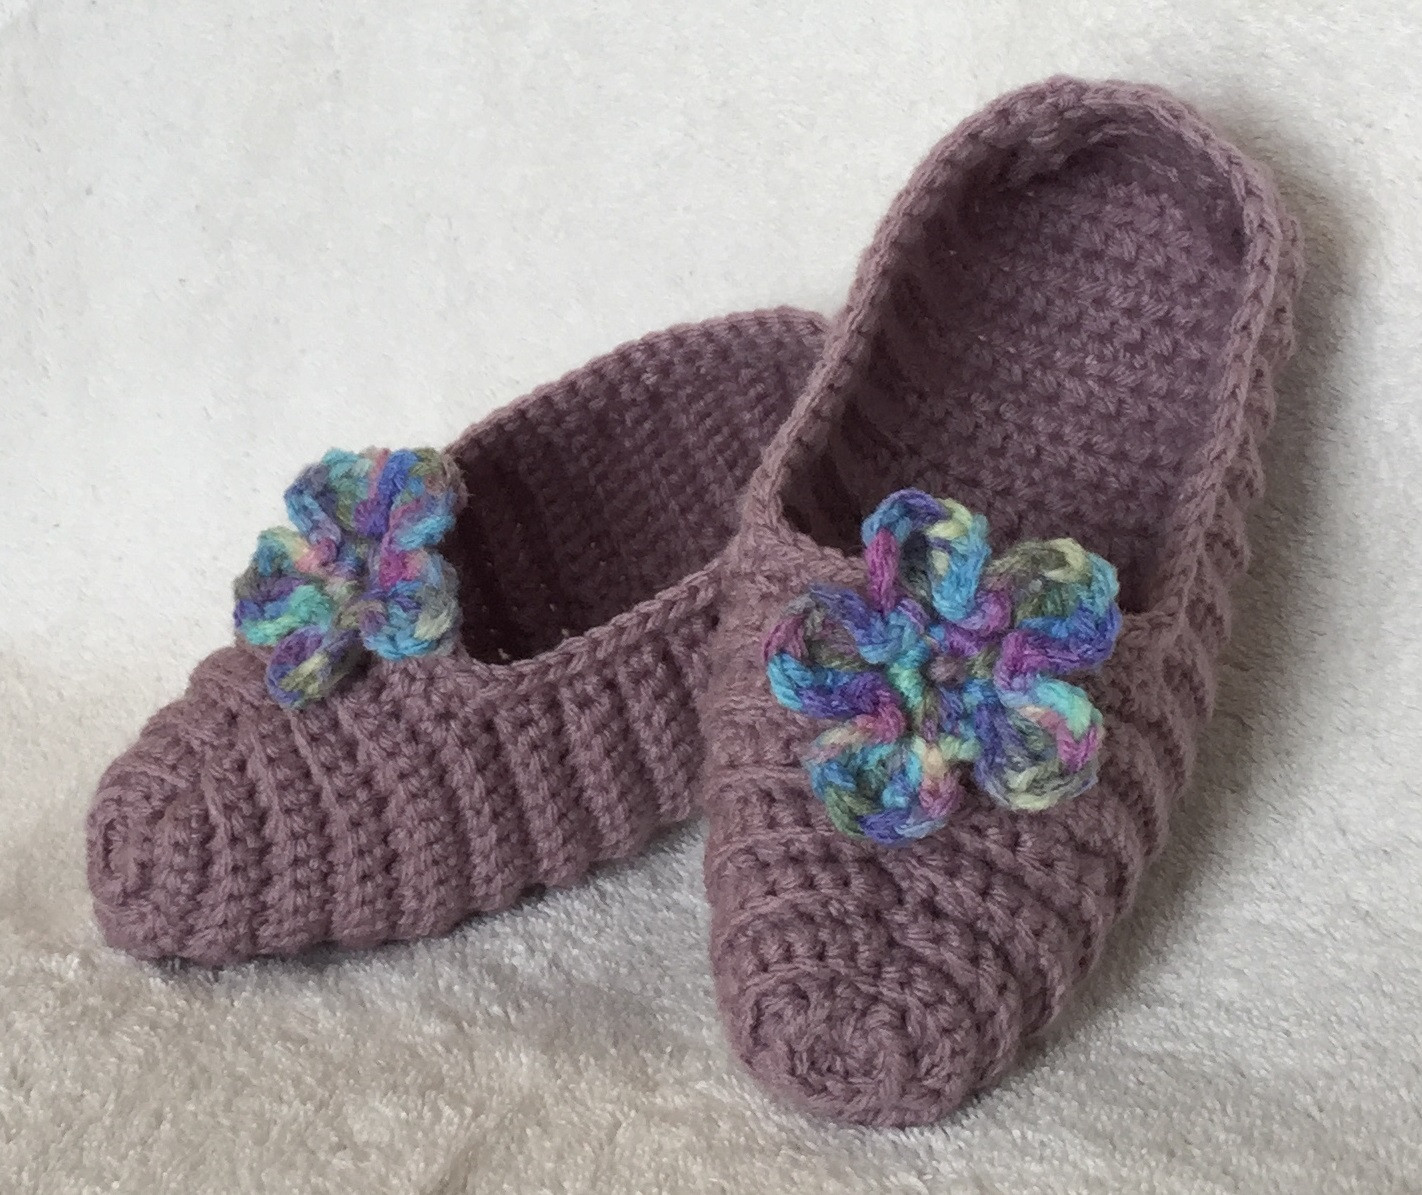 Crochet Slipper Pattern Awesome Kweenbee and Me Crocheted Ribbed Slippers Of Gorgeous 44 Pics Crochet Slipper Pattern